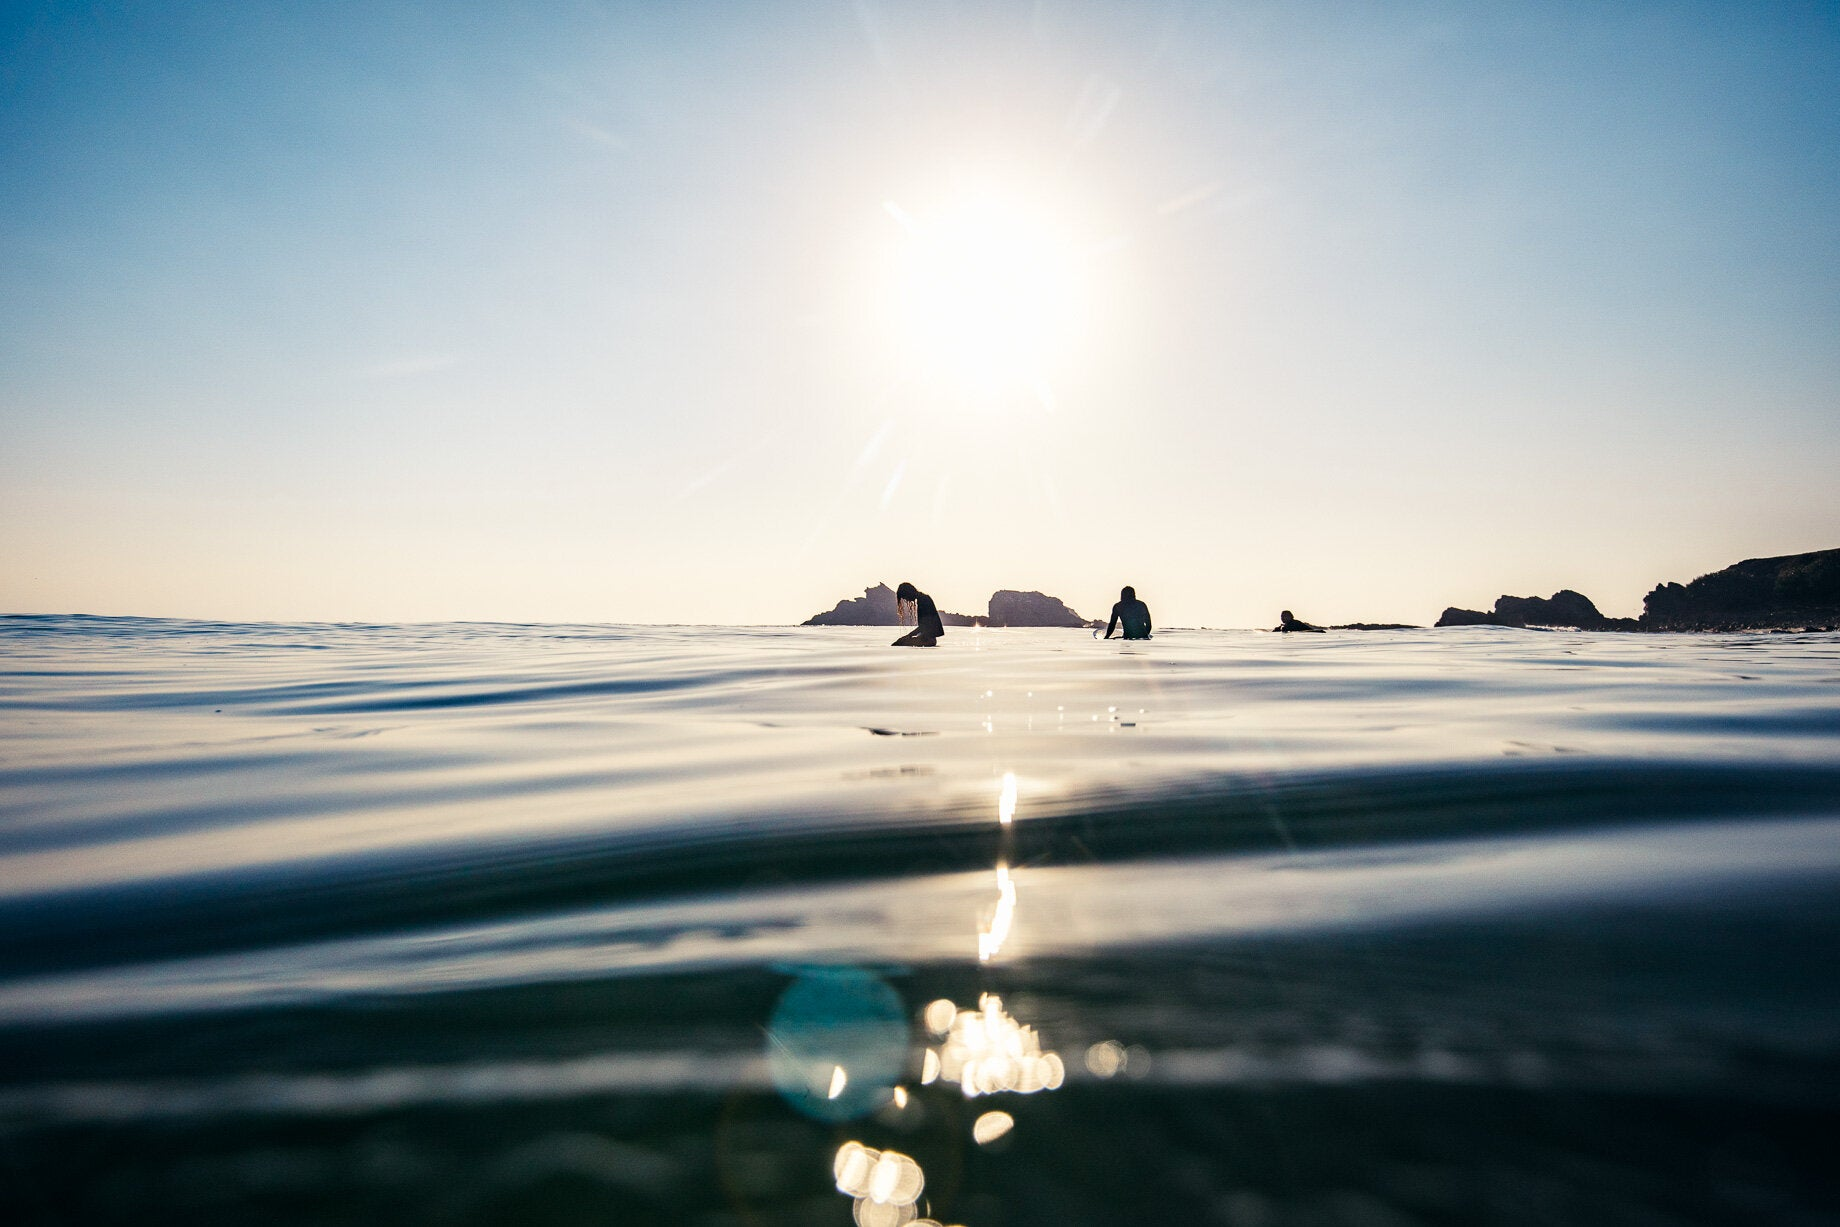 surf photography by clem bourke Lore of the Sea